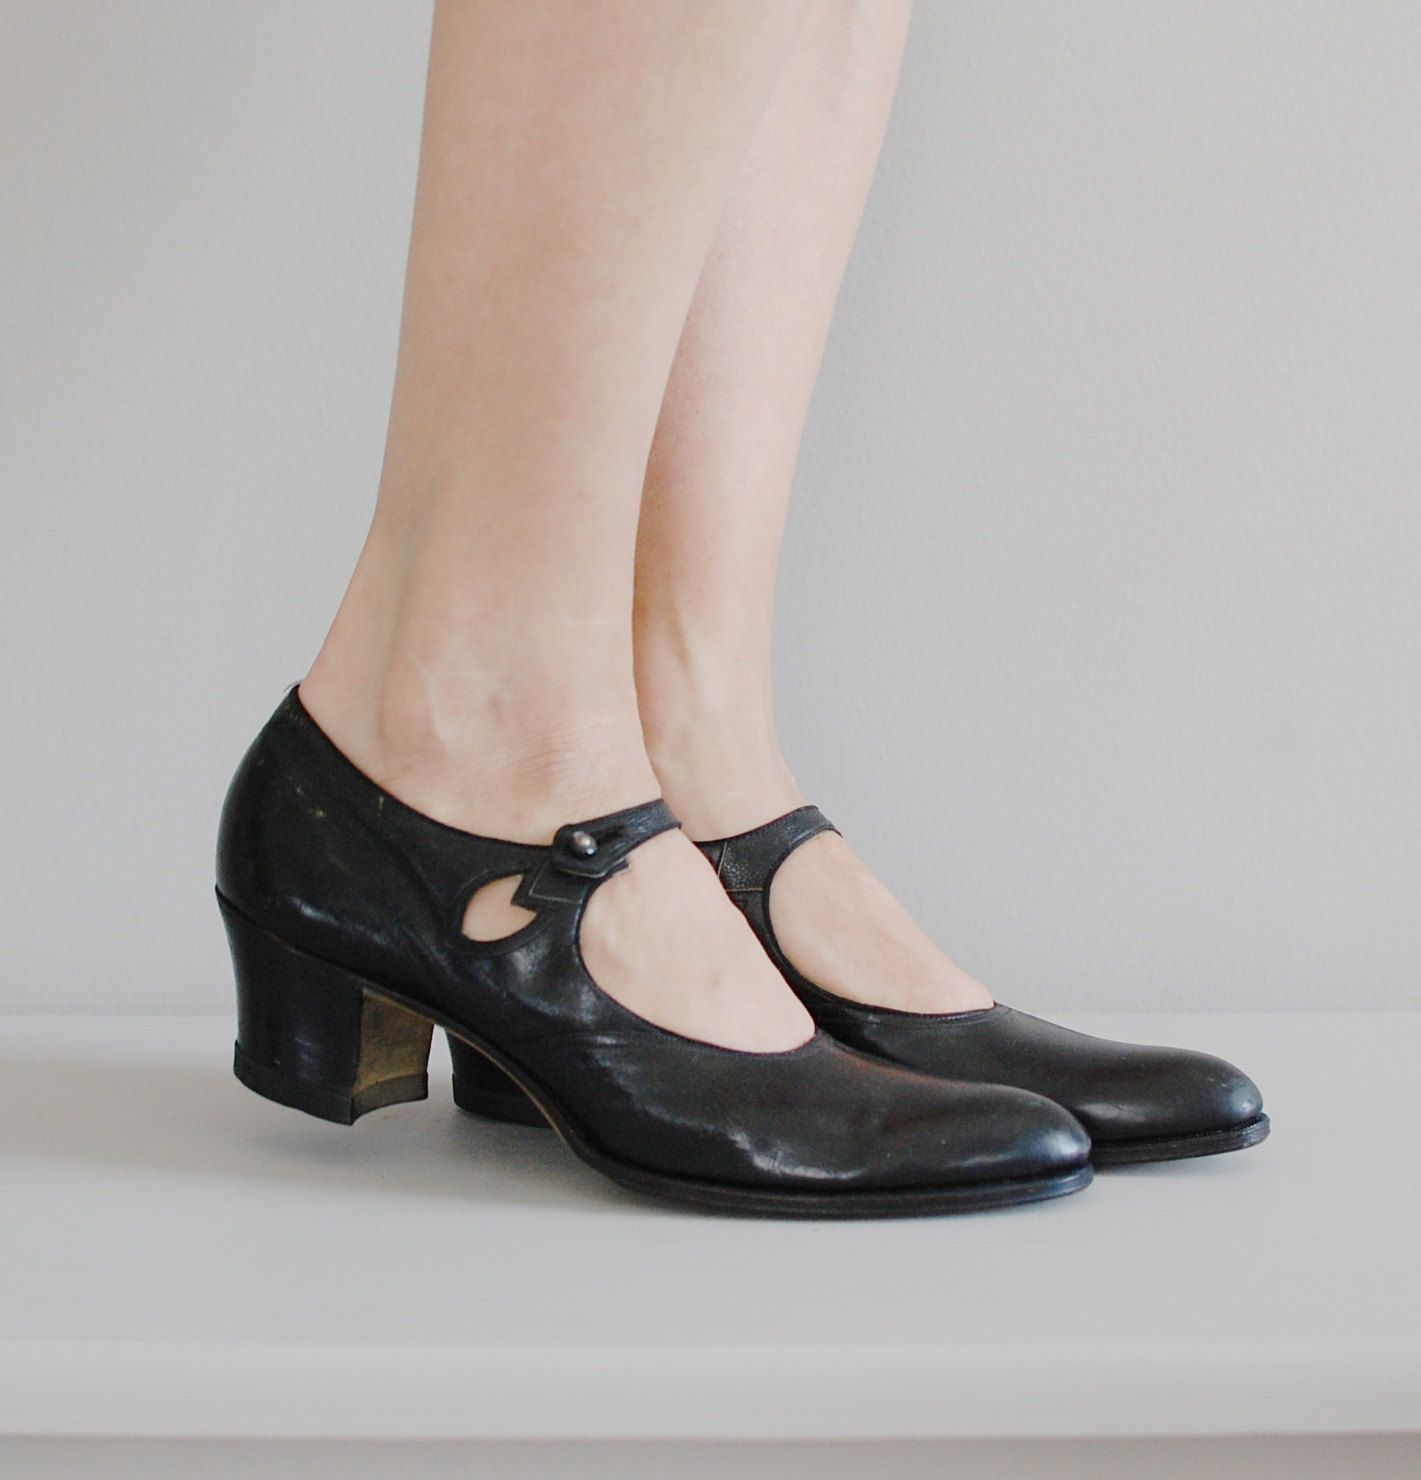 1a2e53e1ac2dc4 Mary Jane shoes from 1920 | MY Favorite clothing & shoes♀ in 2019 ...